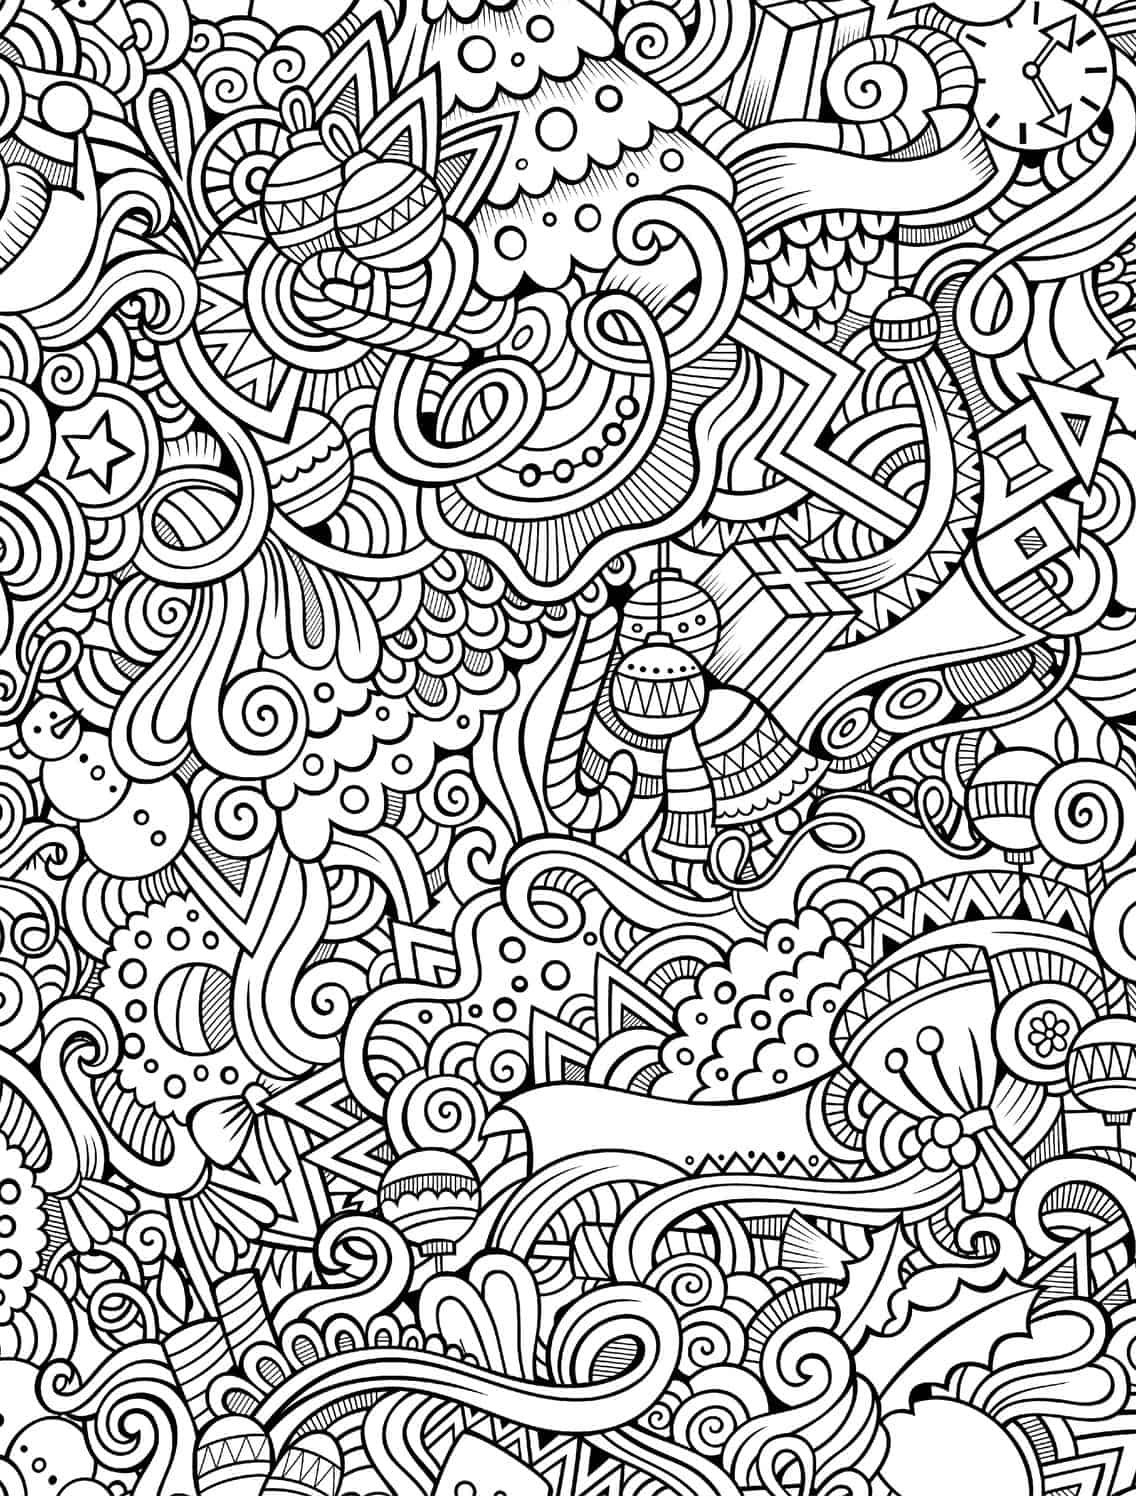 Coloring Pages Pdf : Free printable holiday adult coloring pages